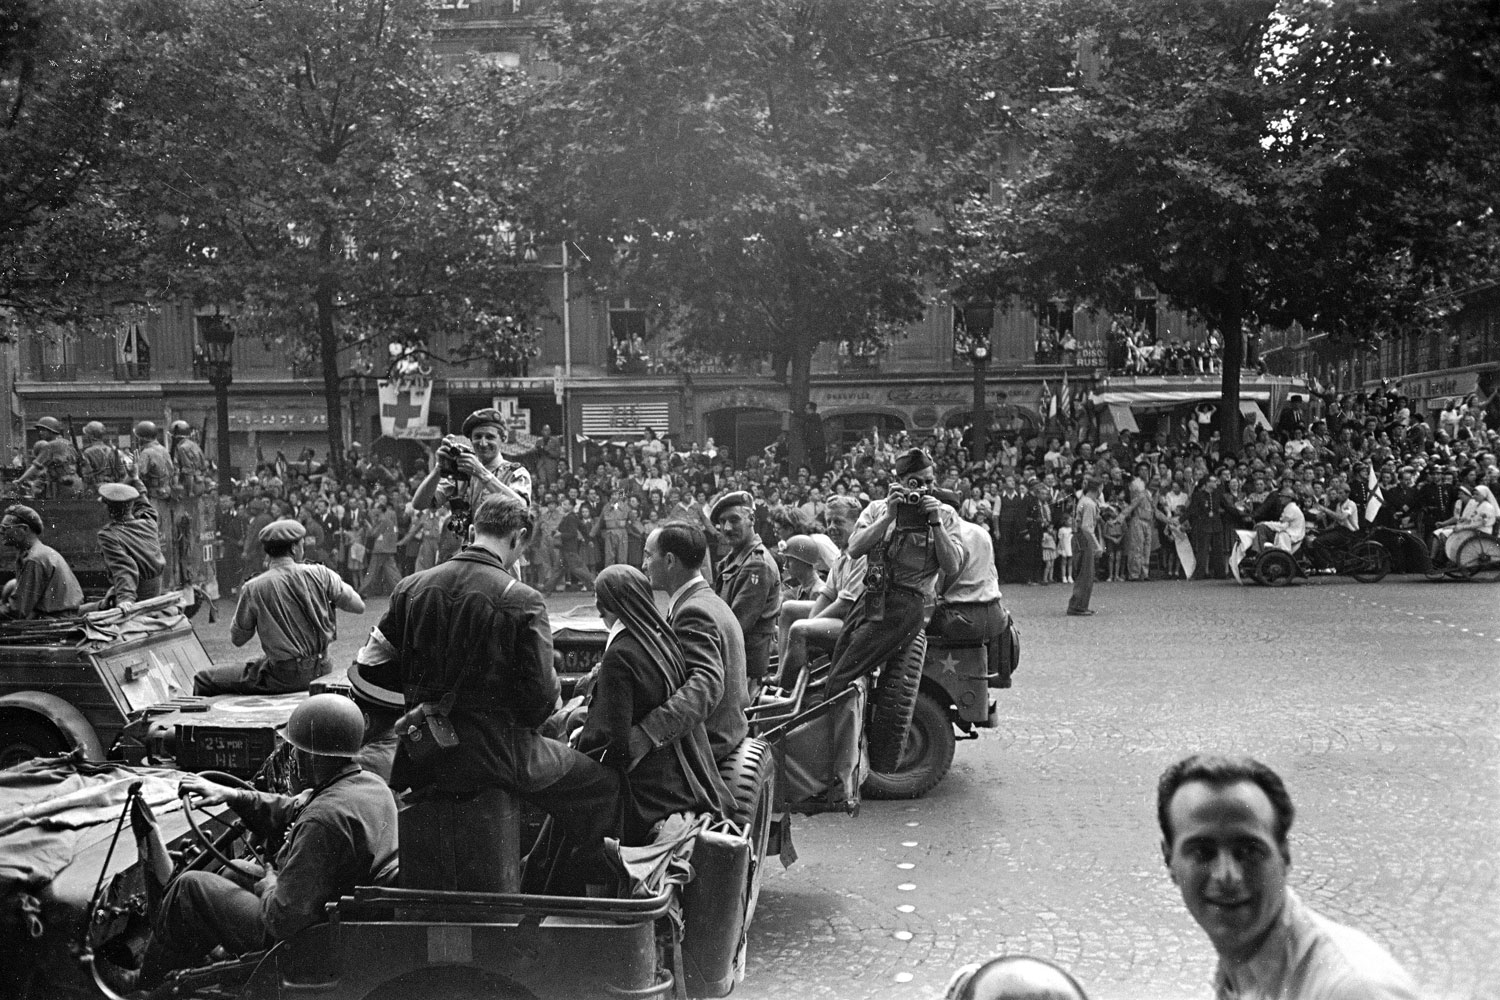 Allied troops and journalists — including photographers Robert Capa (on the back of a Jeep with a camera in front of his face) and George Rodger (with camera, wearing a beret) — in the streets of Paris during the city's liberation, August 1944.